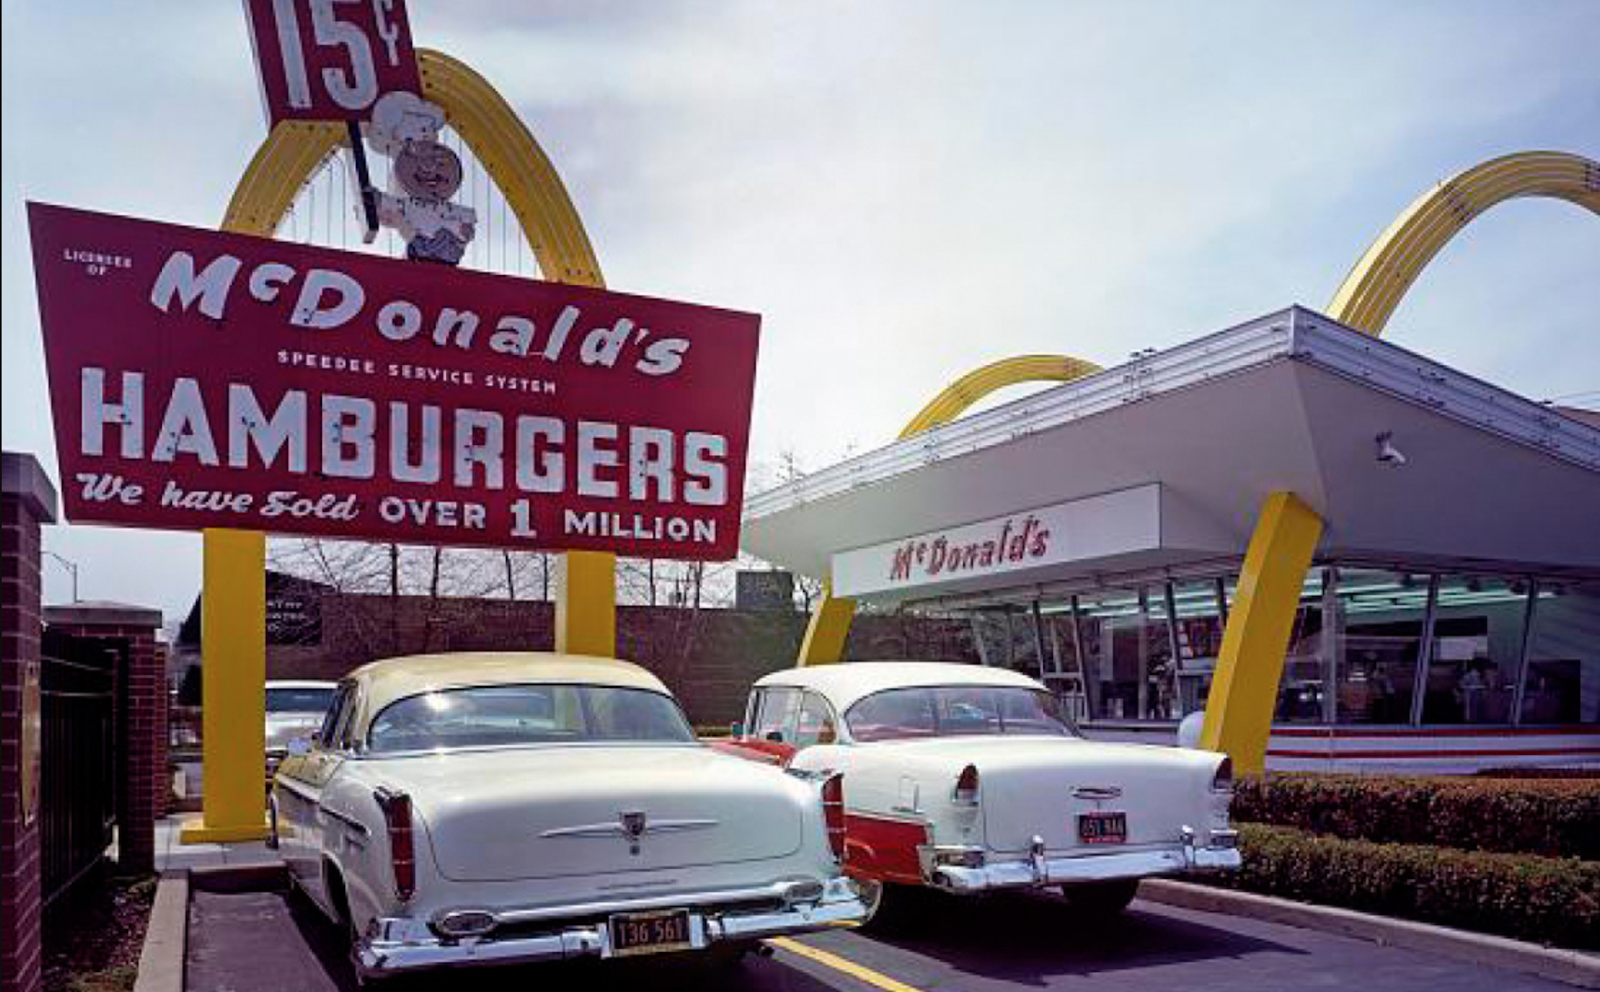 McDonald's early social proof included the number of burger sold.